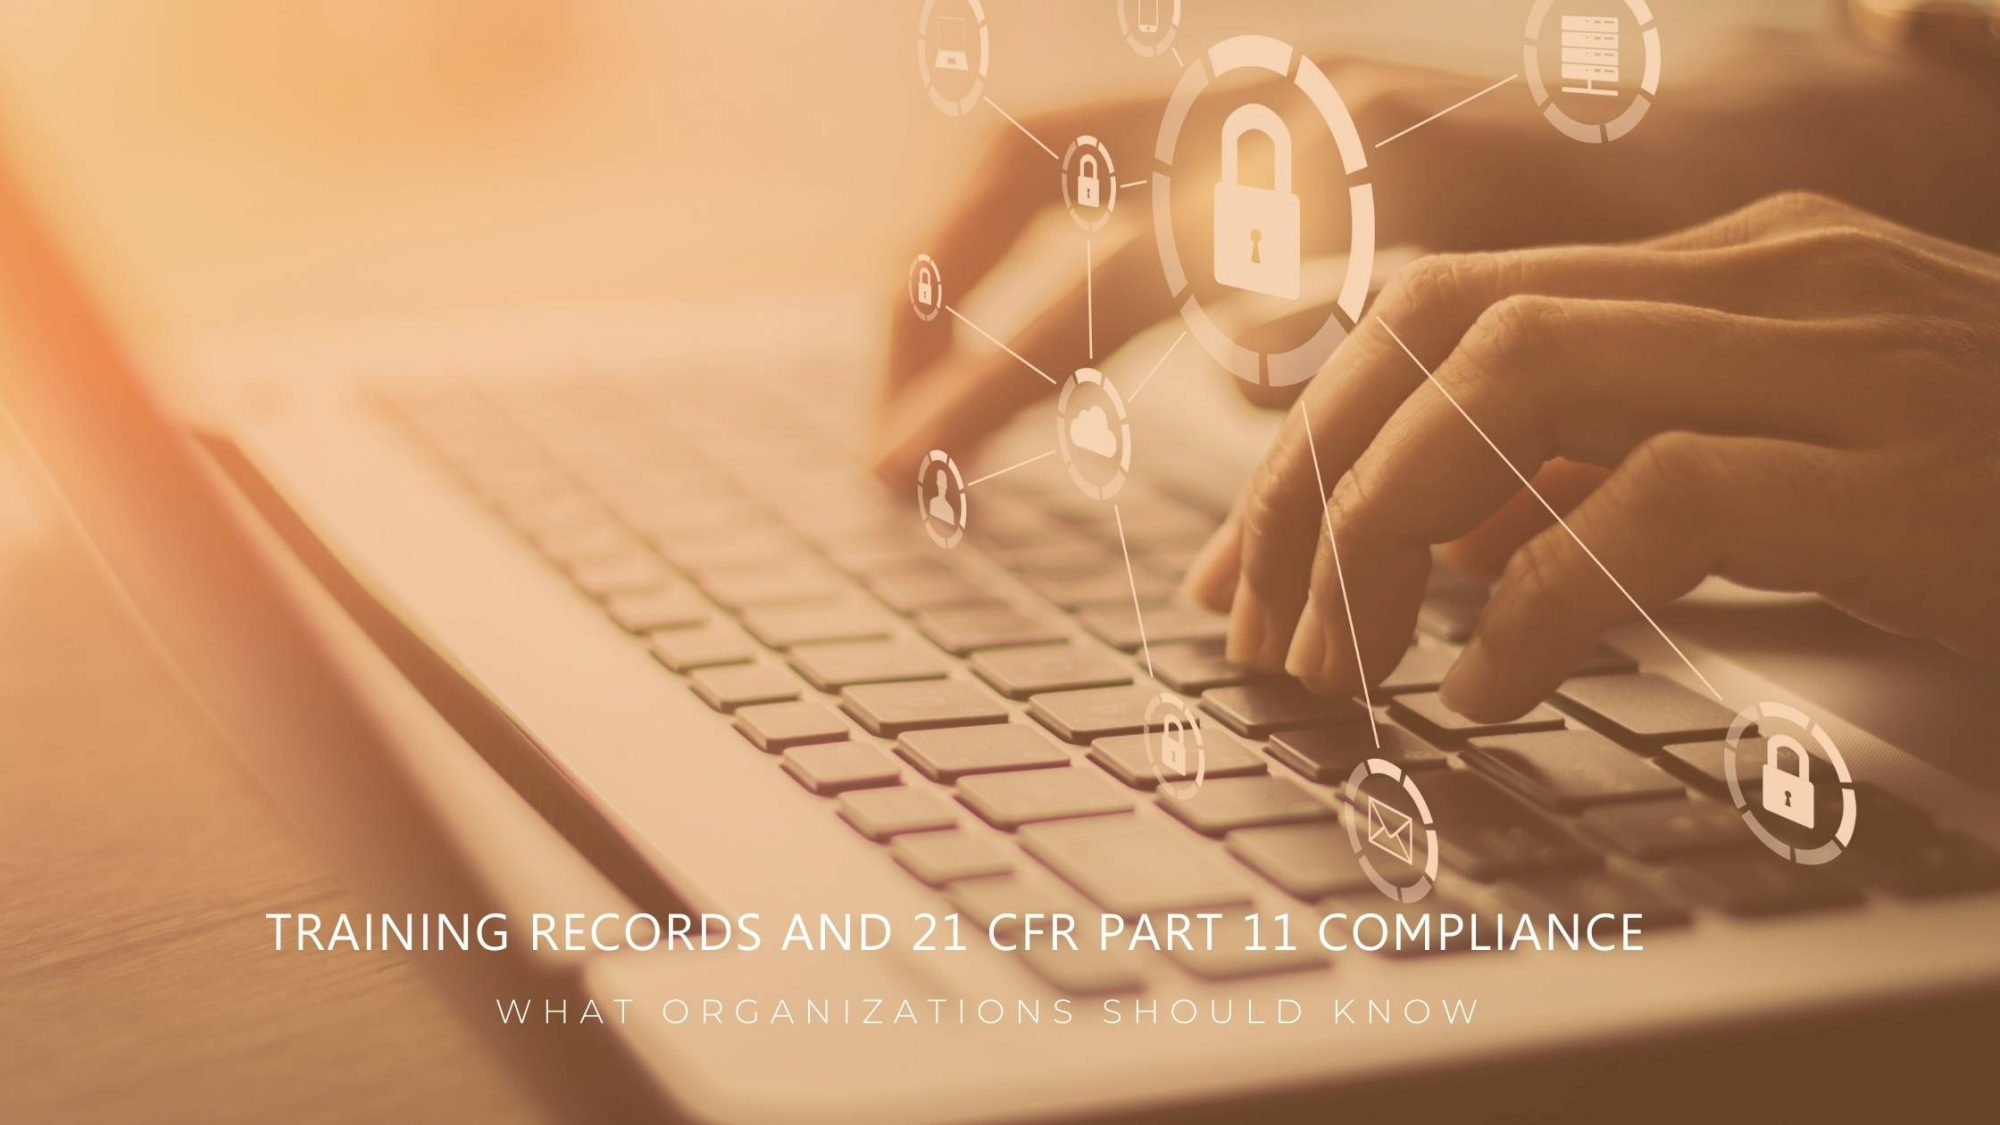 Training Records and 21 CFR Part 11 Compliance: What Organizations Should Know